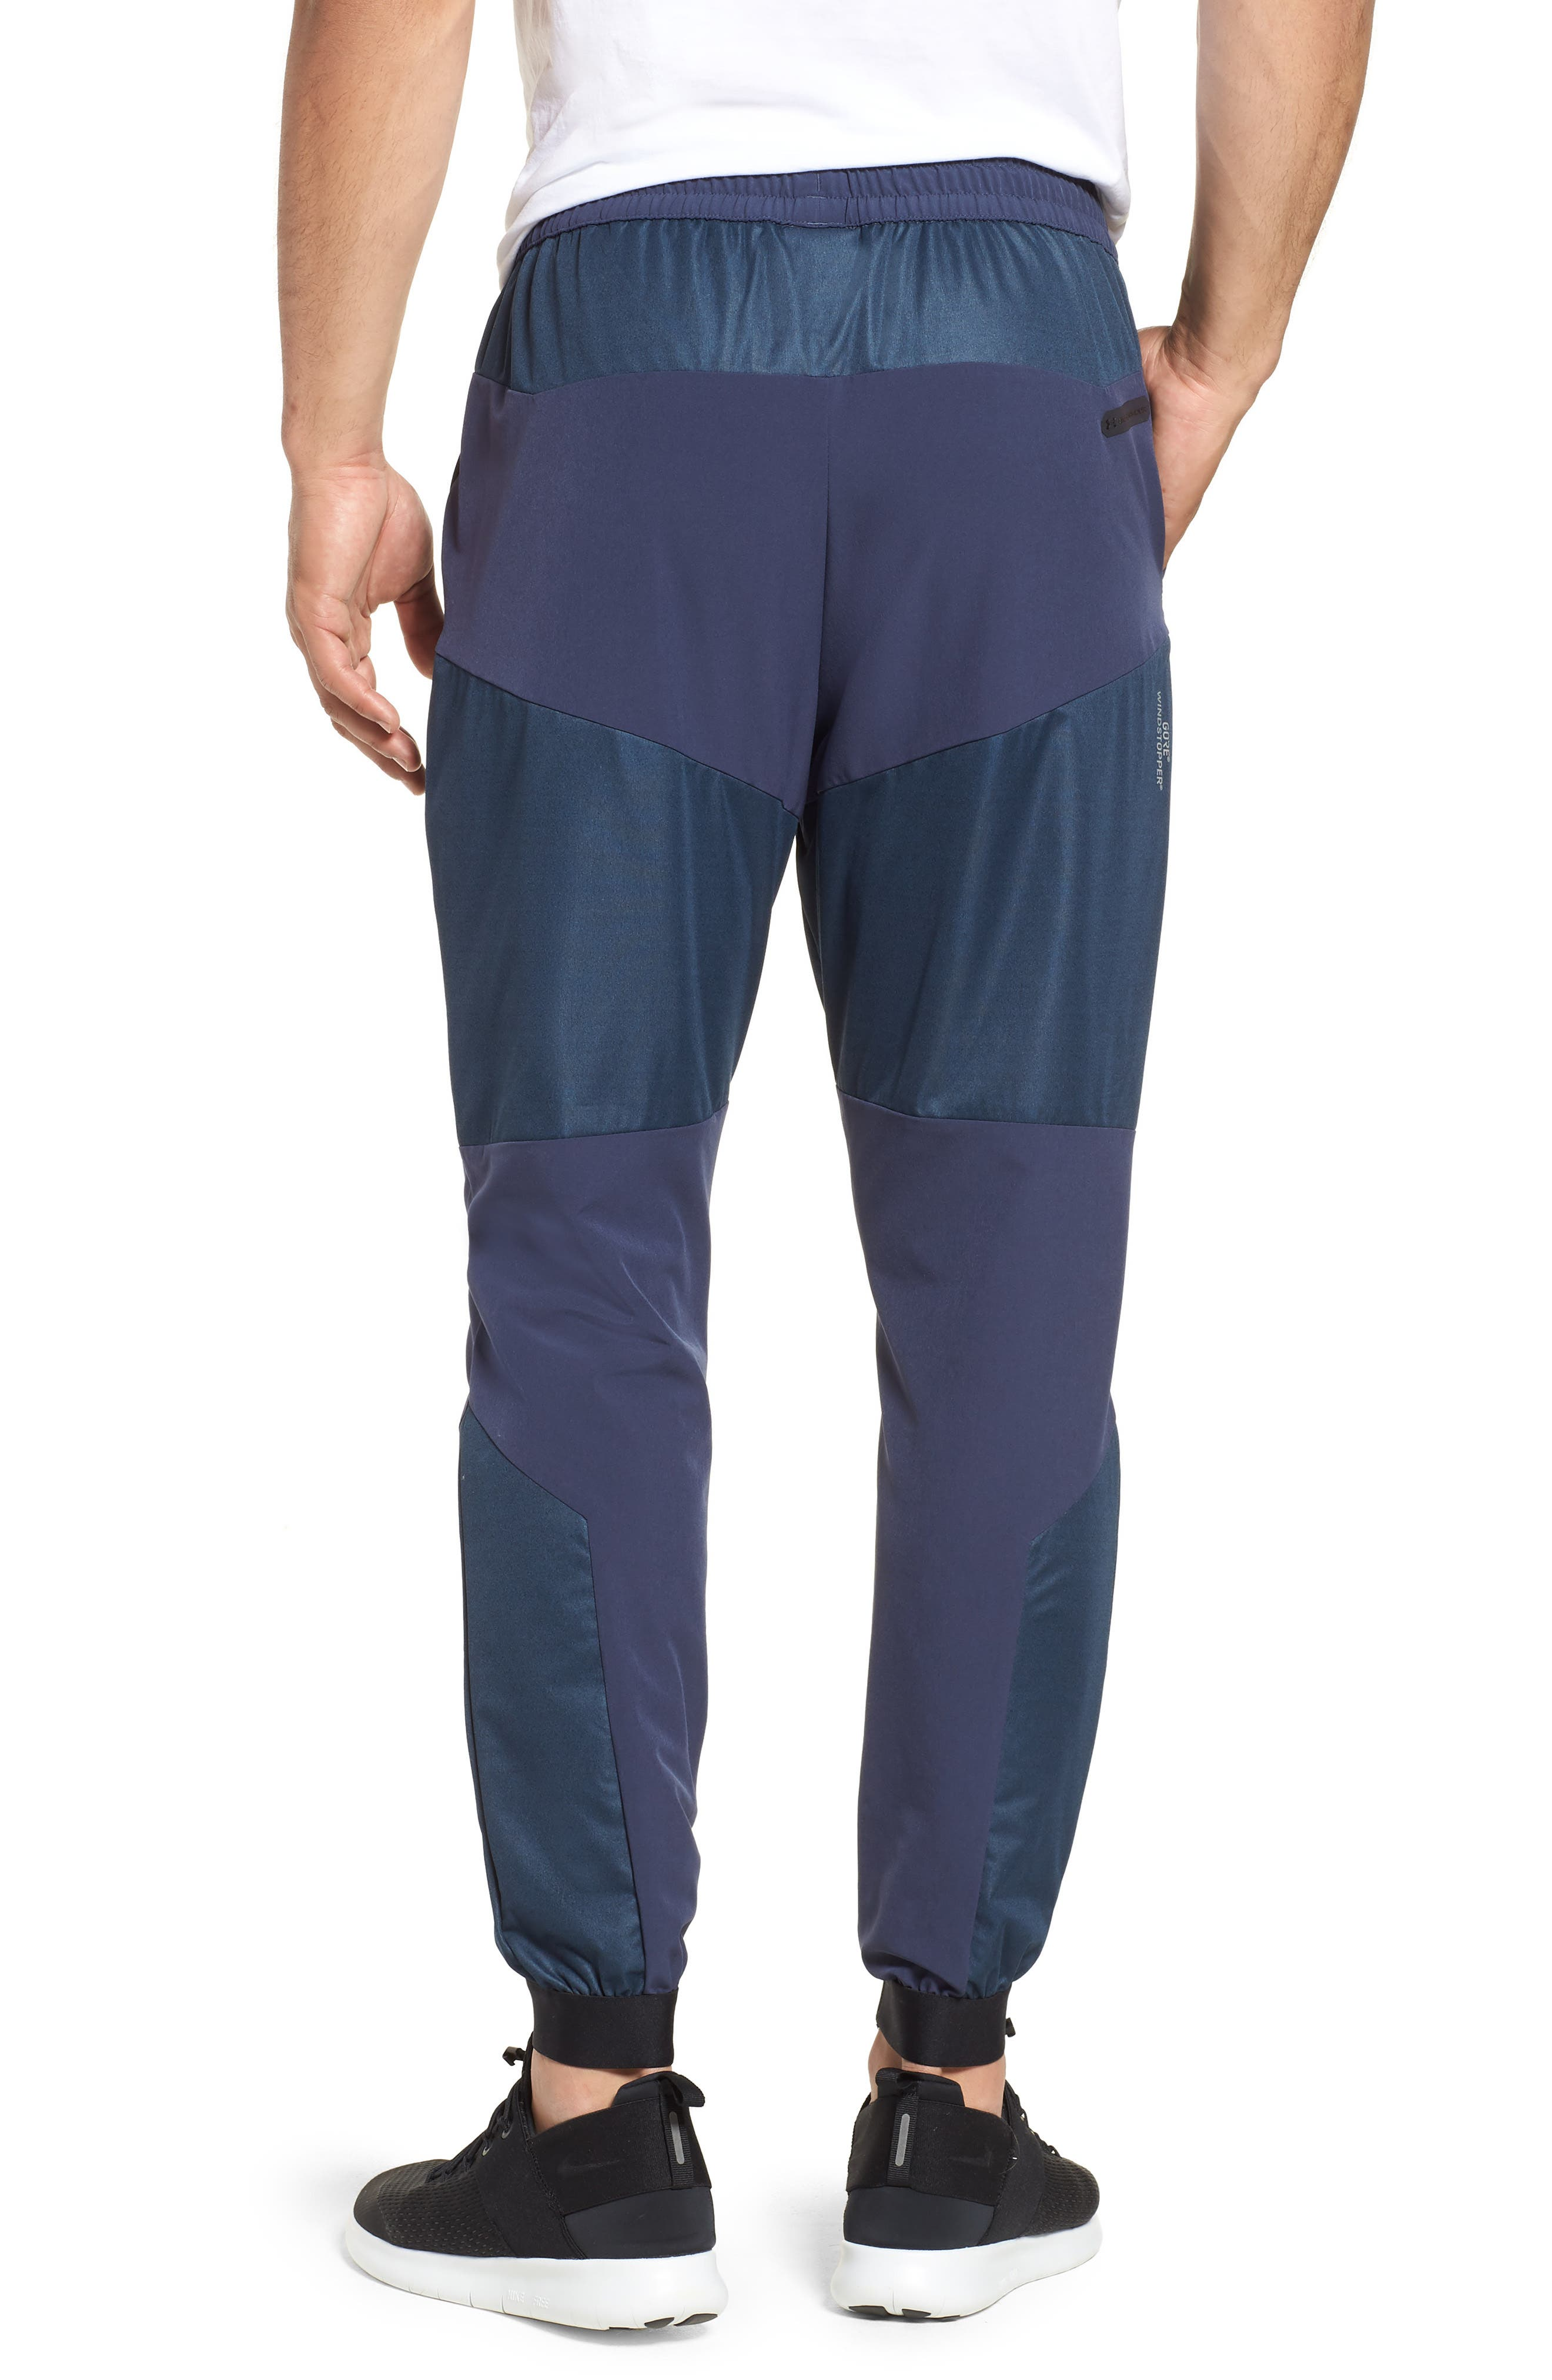 Unstoppable GORE<sup>®</sup> WINDSTOPPER<sup>®</sup> Jogger Pants,                             Alternate thumbnail 2, color,                             MIDSUMMER NIGHT / REFLECTIVE